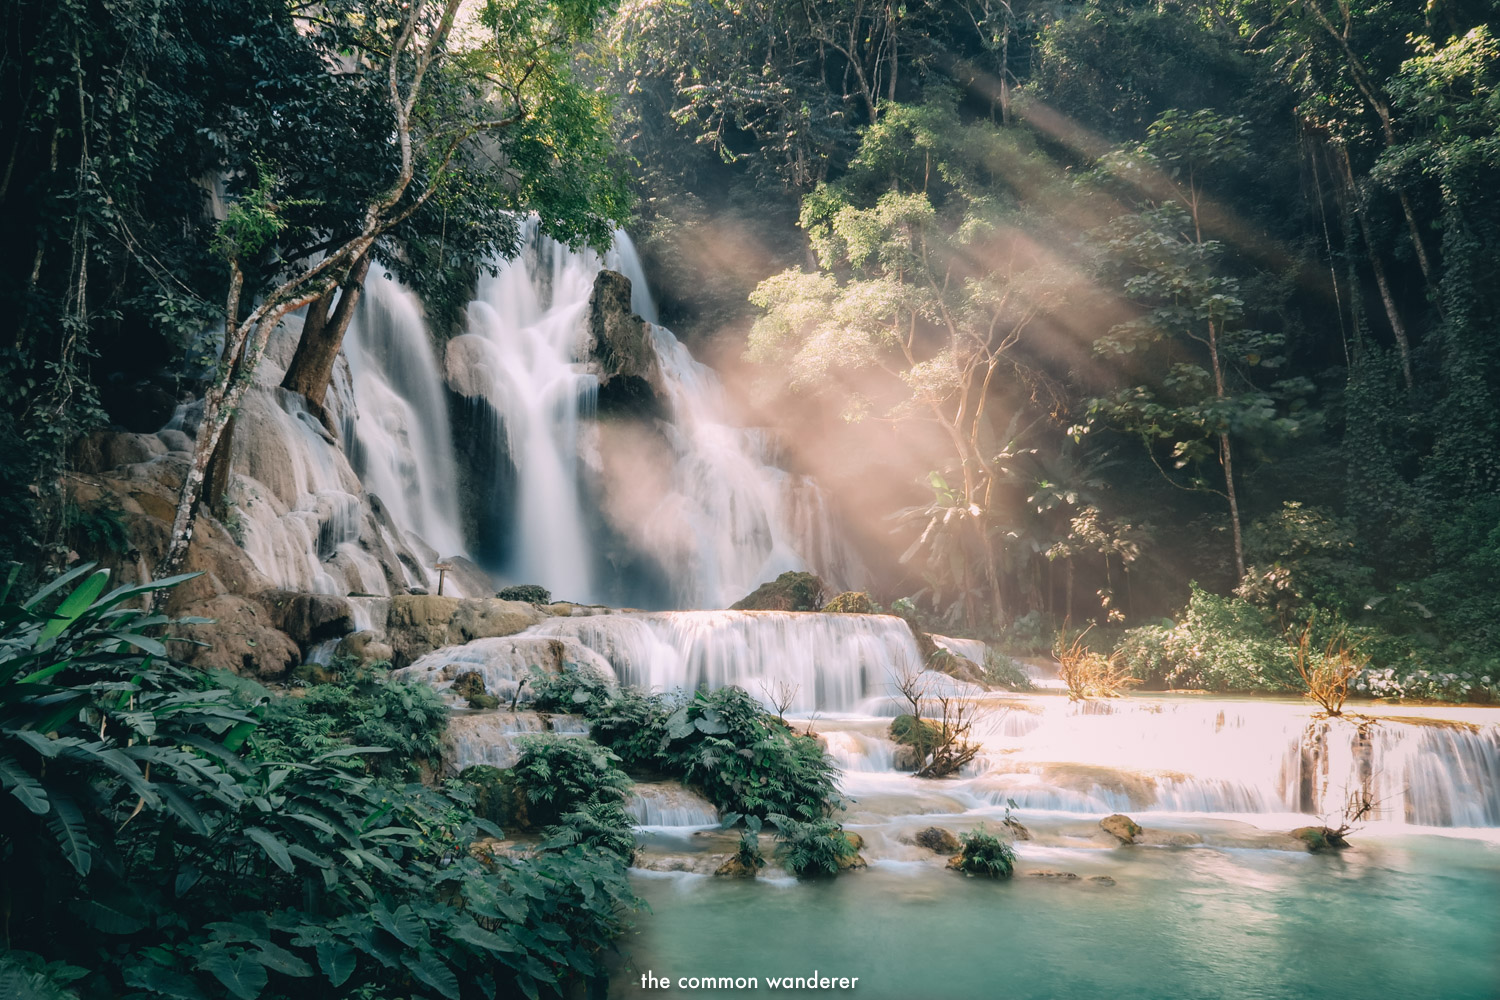 - We definitely recommend visiting Kuang Si waterfall early (8am), before the hoards of tourists arrive. After 11am, it becomes extremely busy. For those wanting to swim, there are changing facilities.